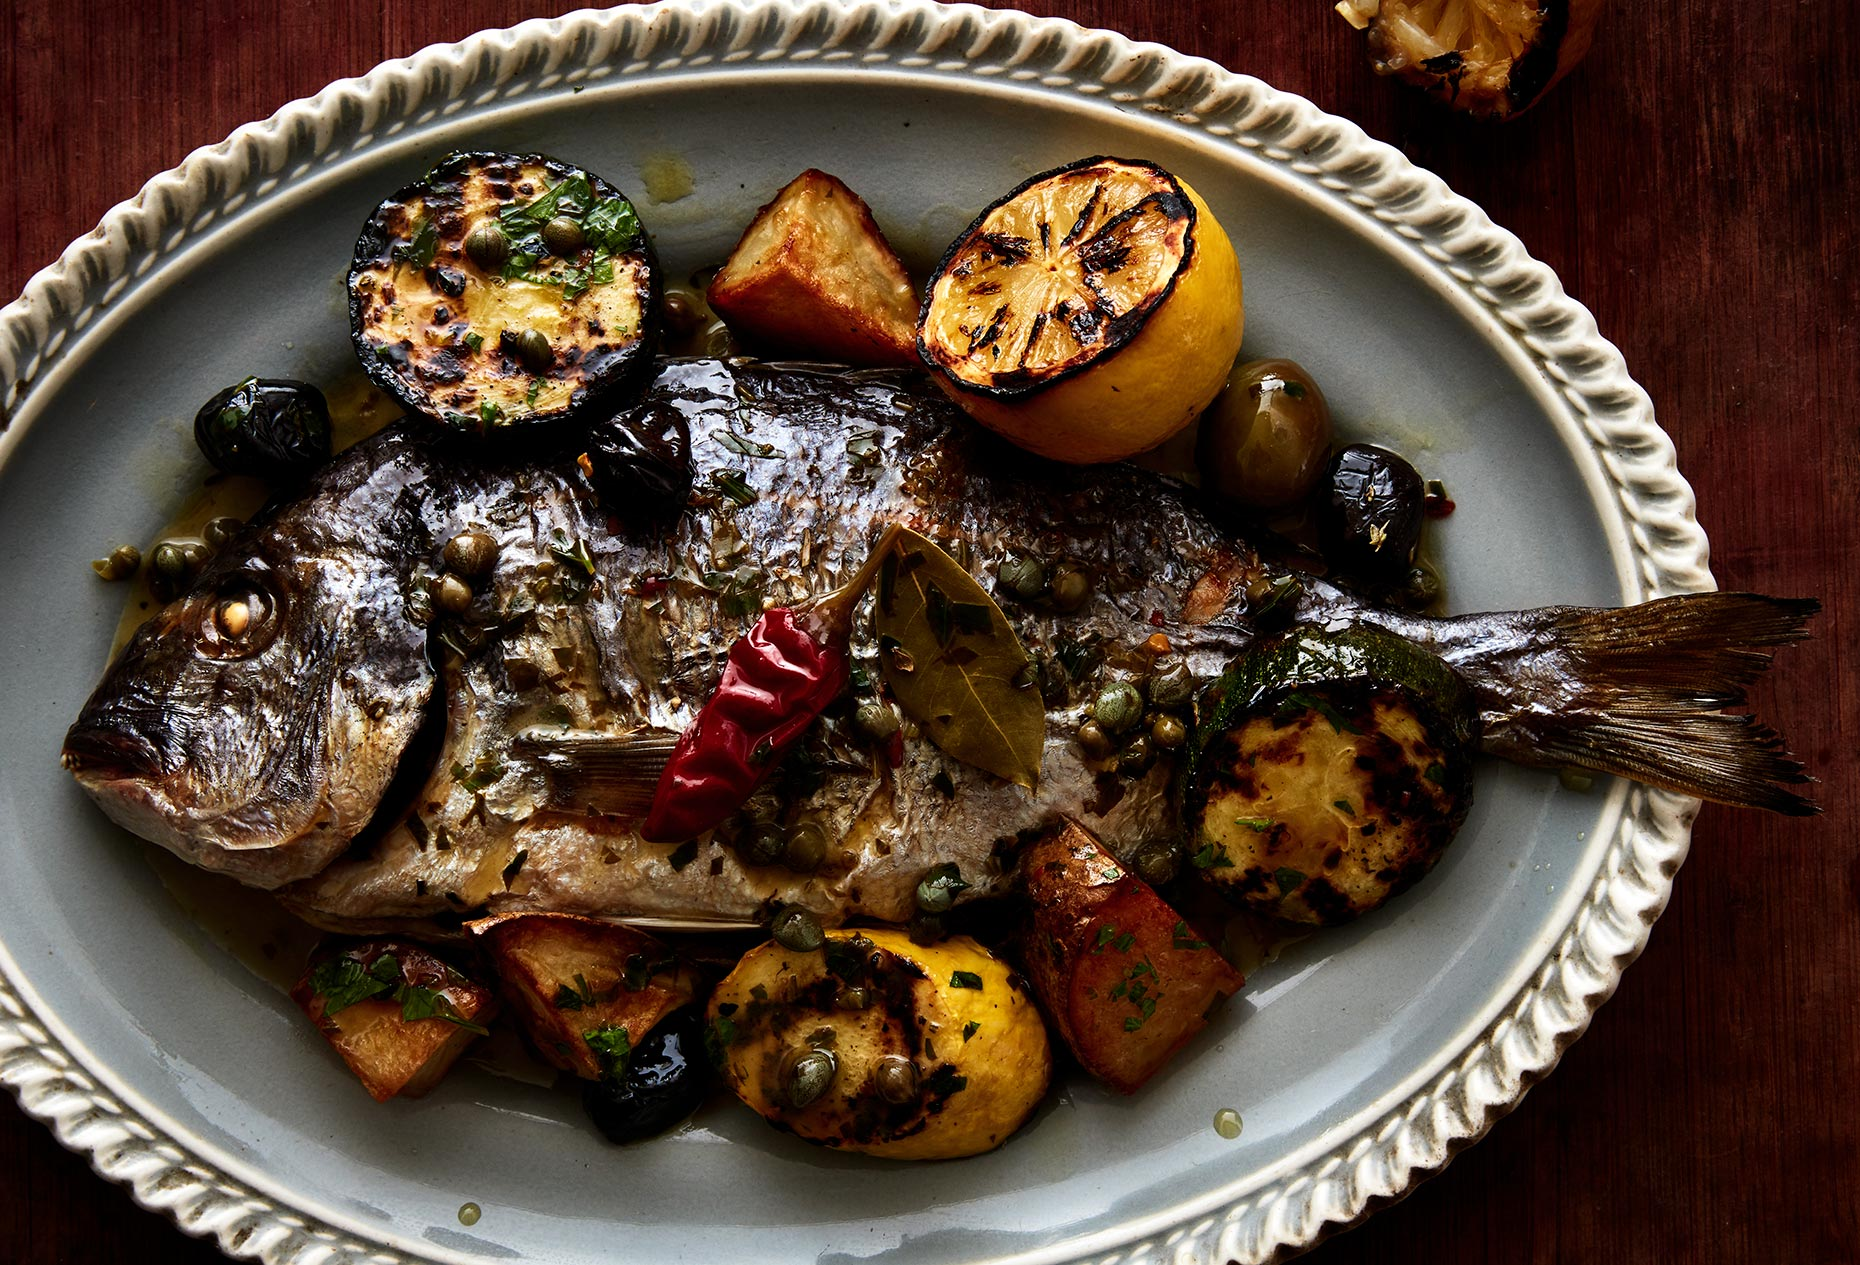 Whole roasted fish on a plate with lemons and vegetables.